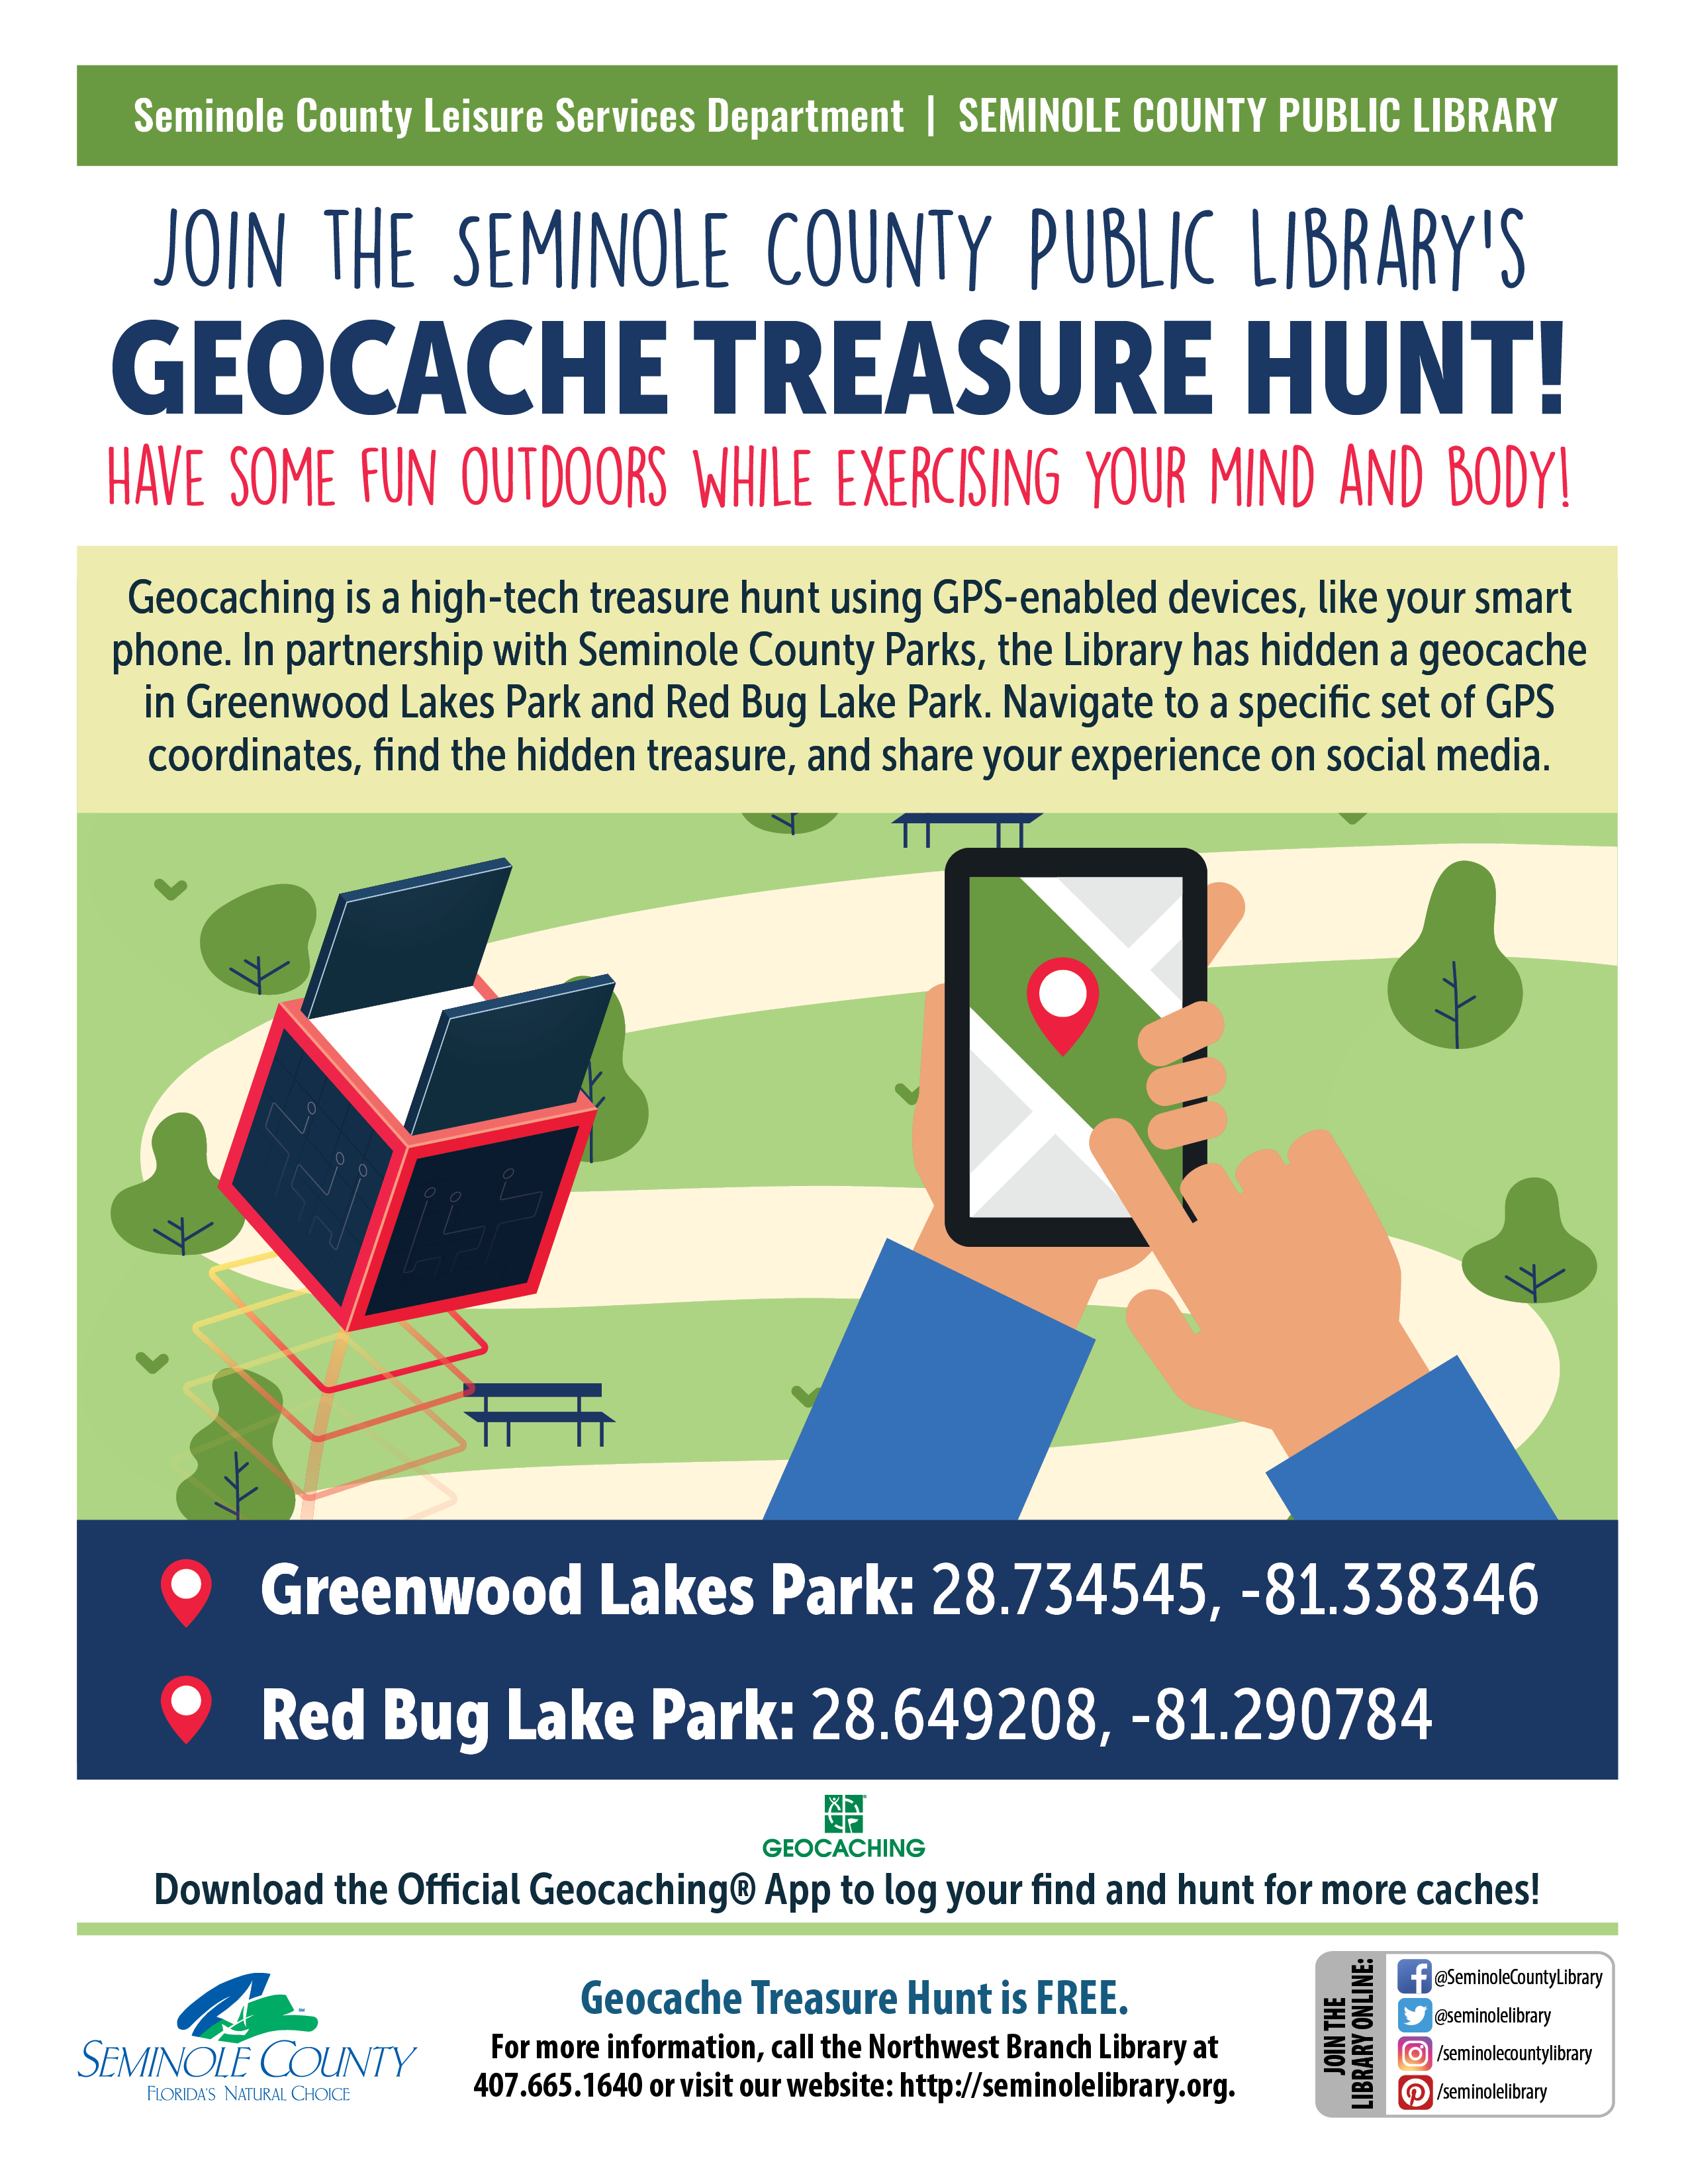 Join the Seminole County Public Library's Geocache Treasure Hunt